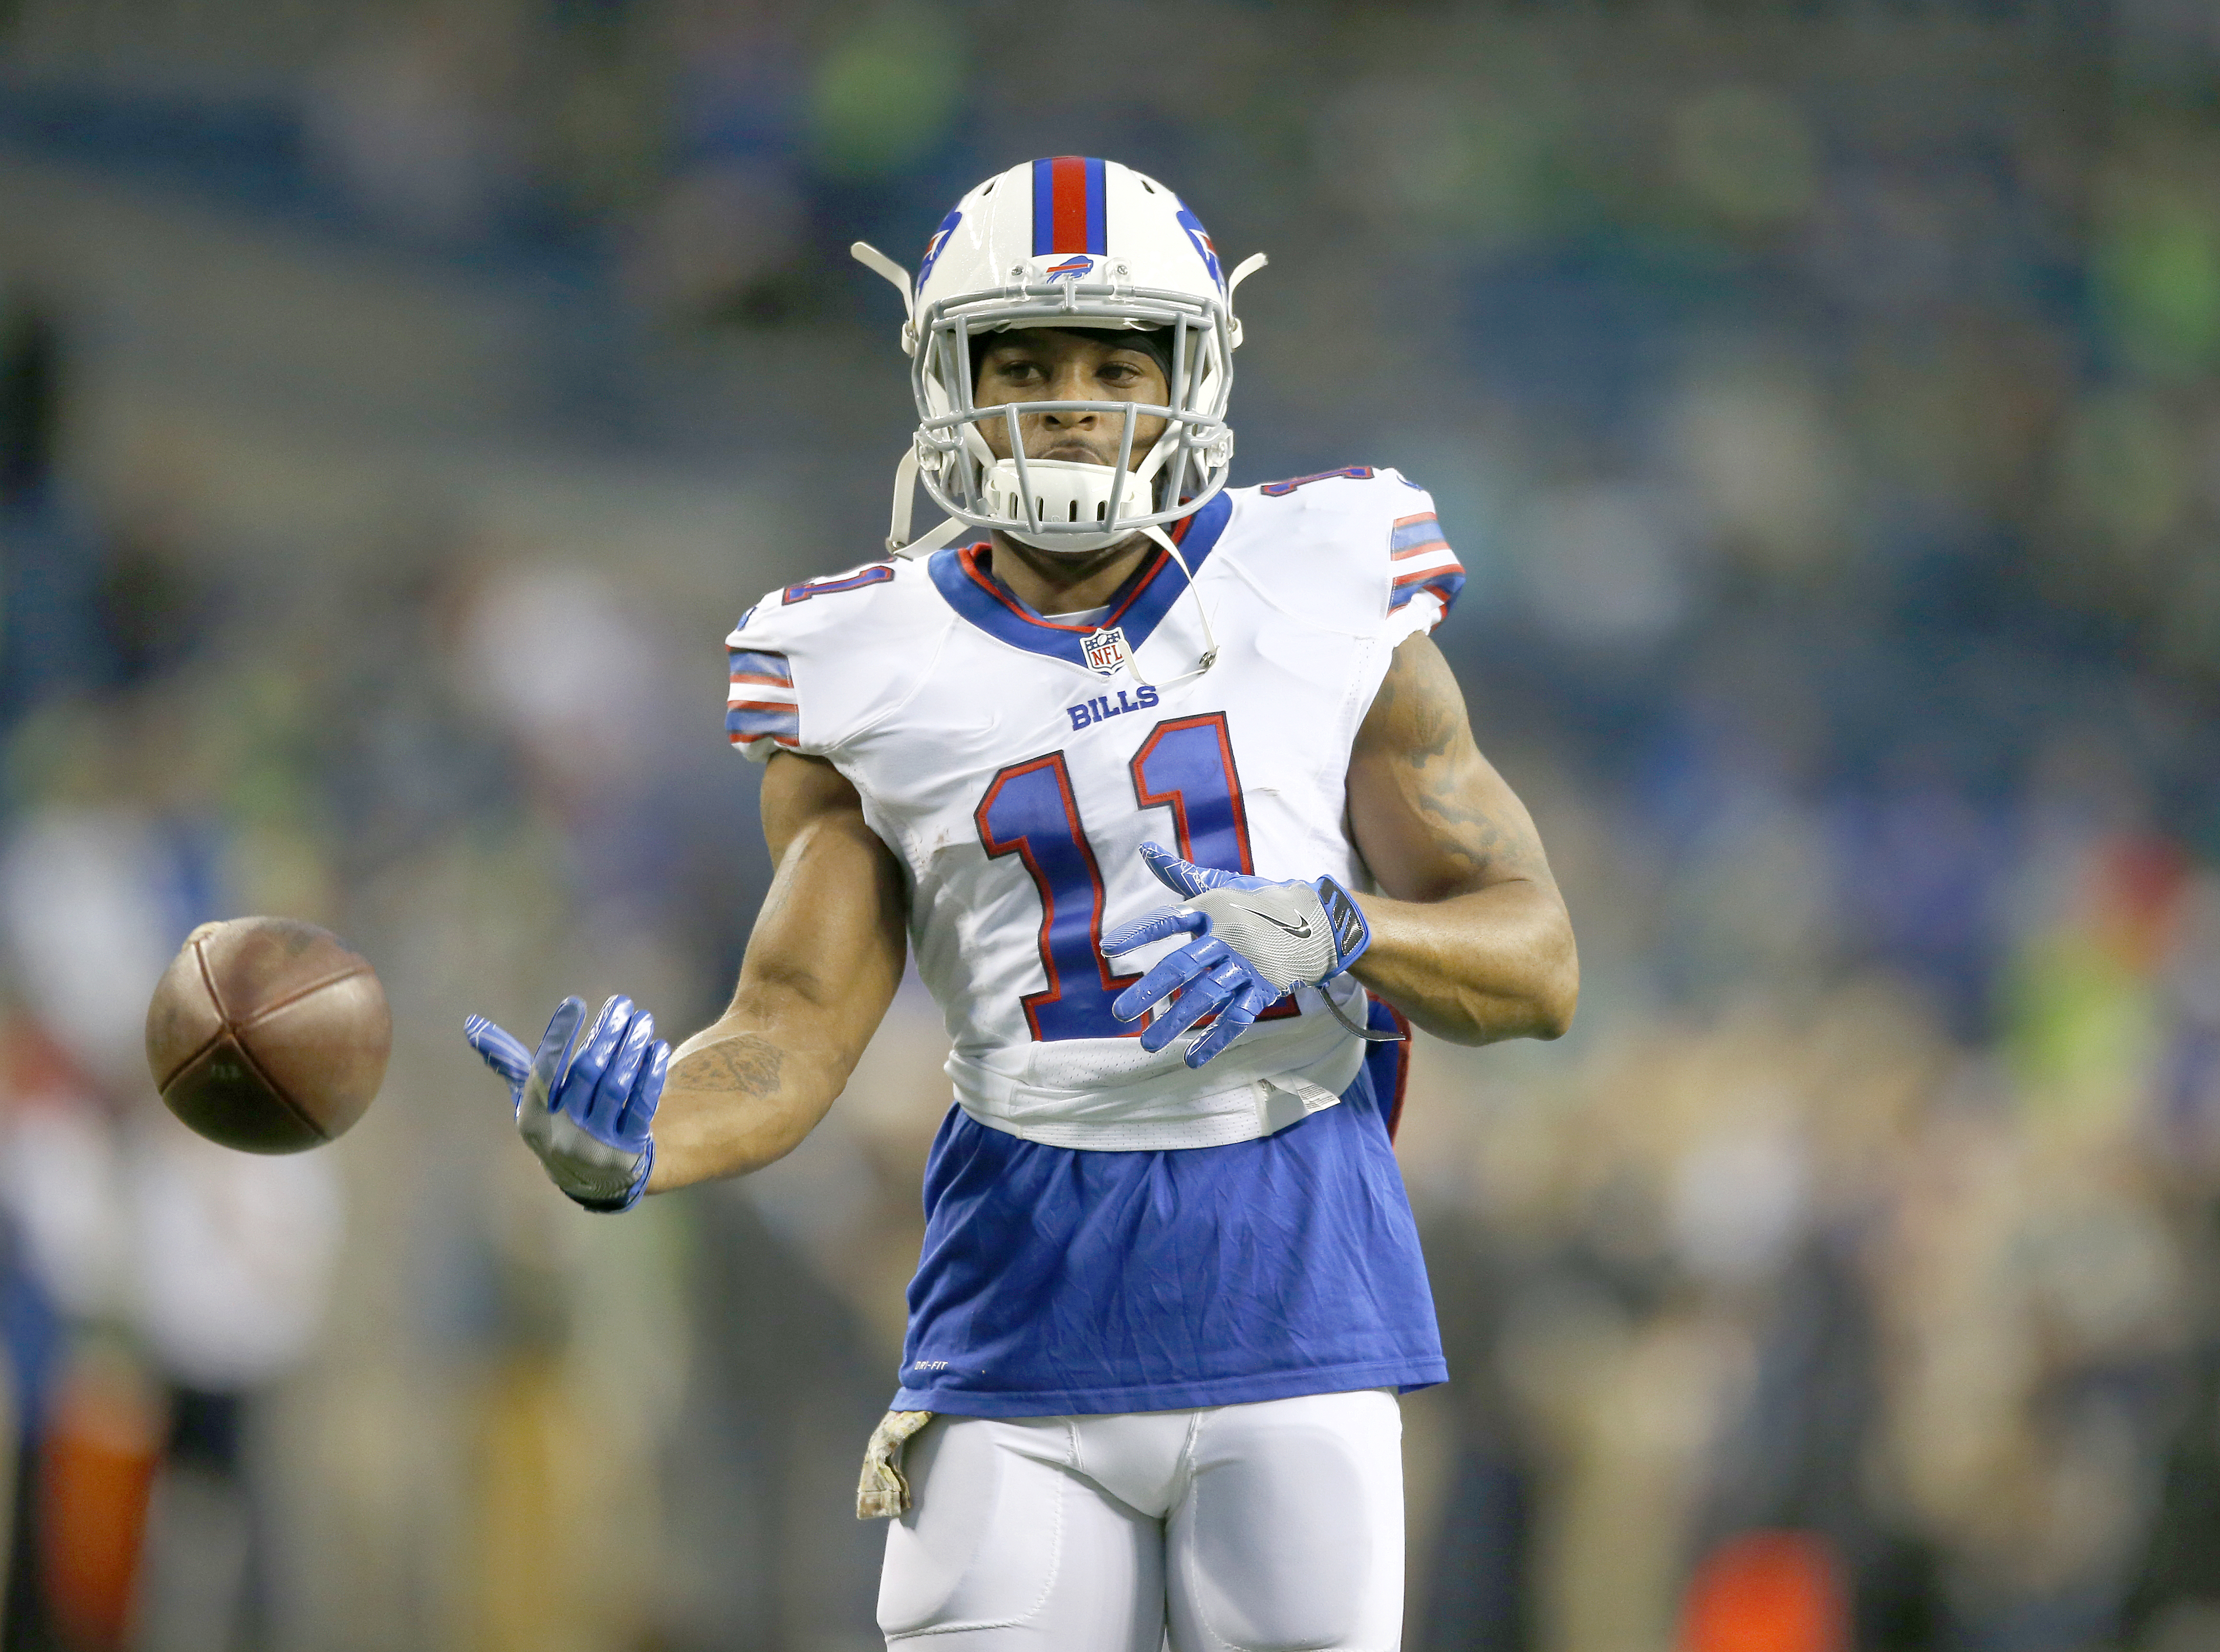 Bills receiver Percy Harvin missed two days of practice during the week with what the team called an illness. (Getty Images)